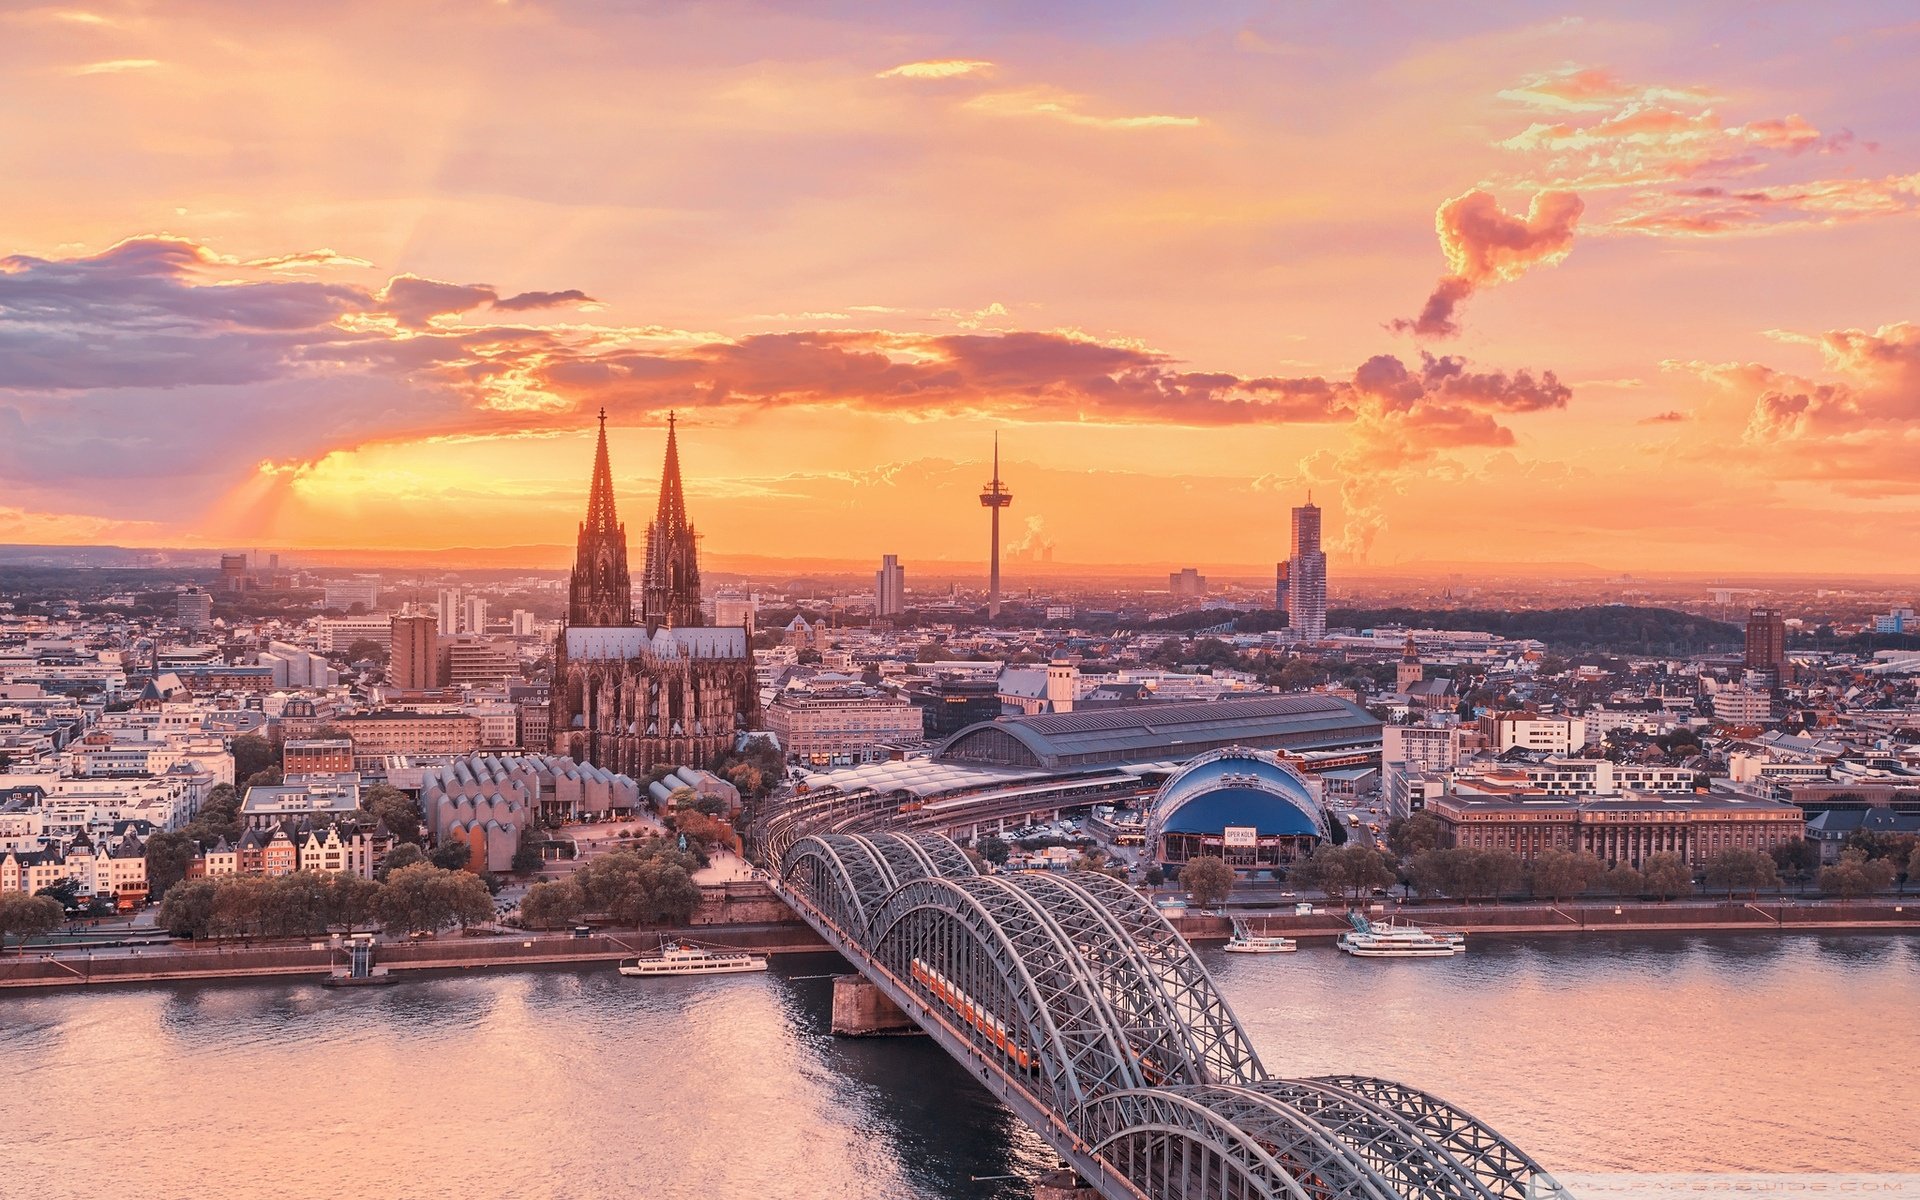 cologne_city-wallpaper-1920x1200.jpg